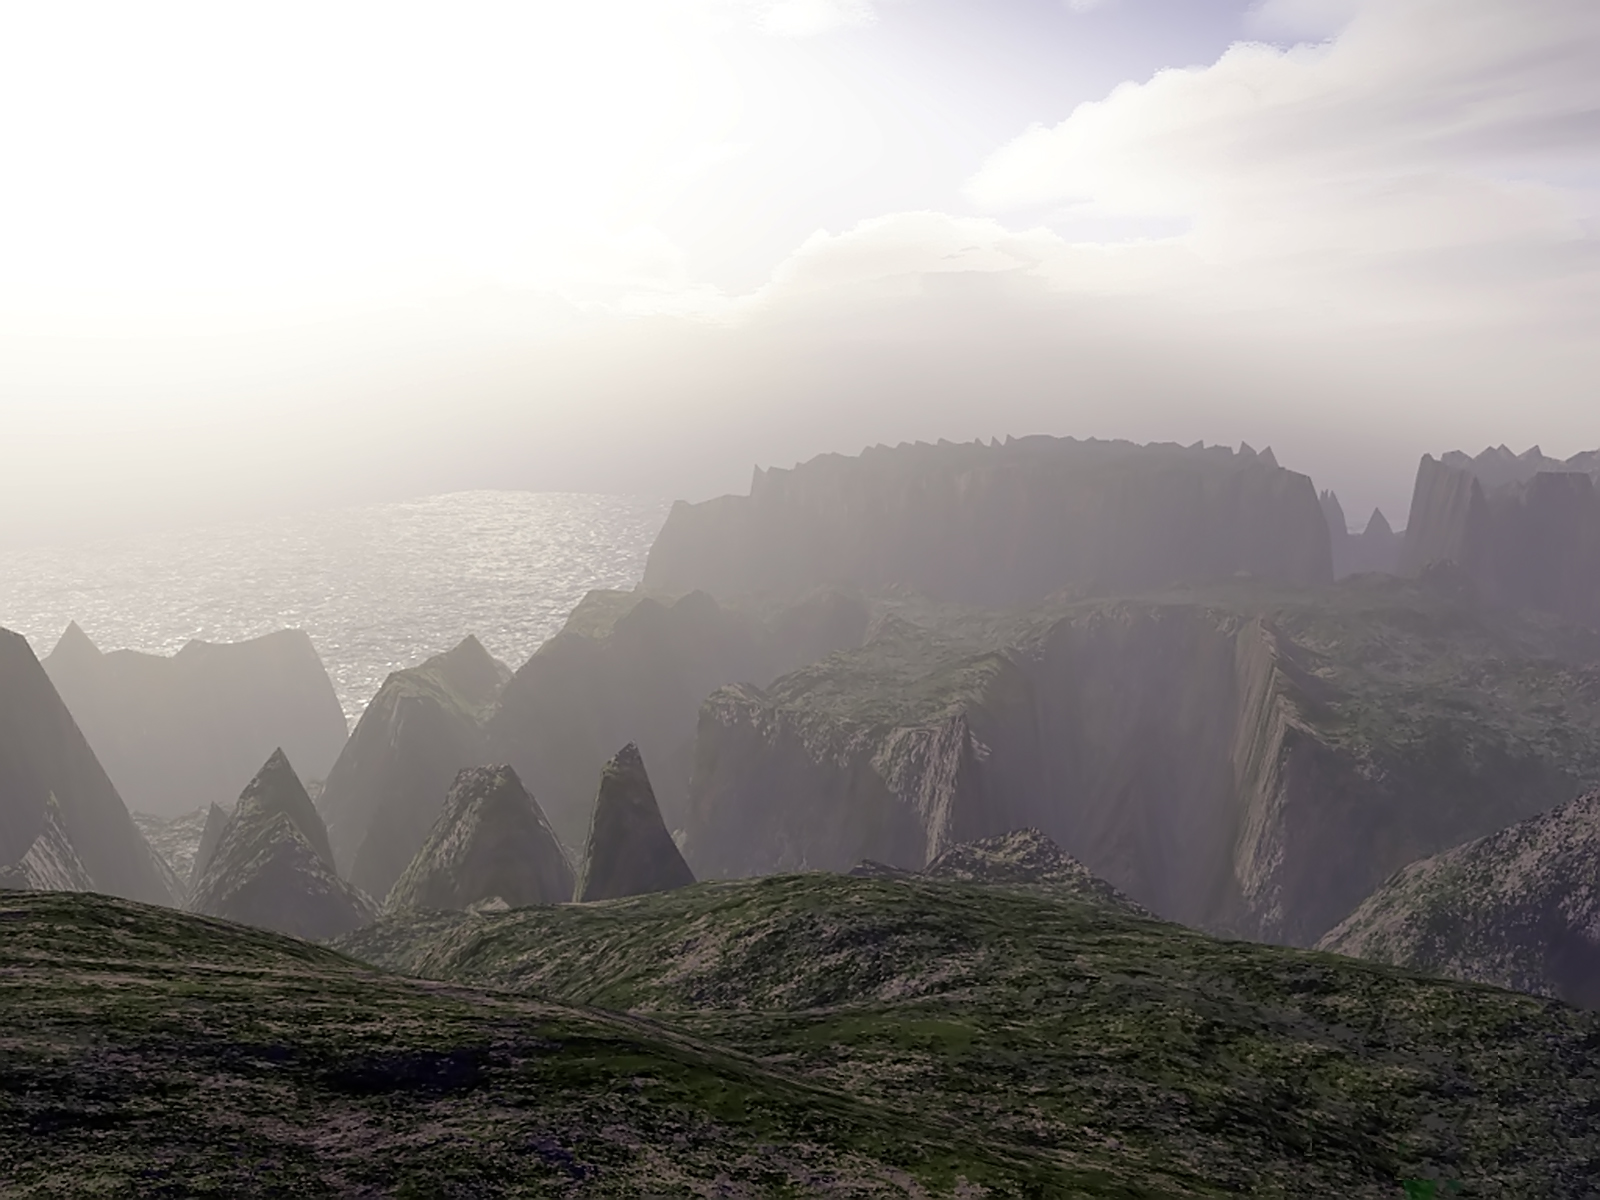 MORNING FOG, 3d, Bspo06, Cliffs, Fog, HQ Photo